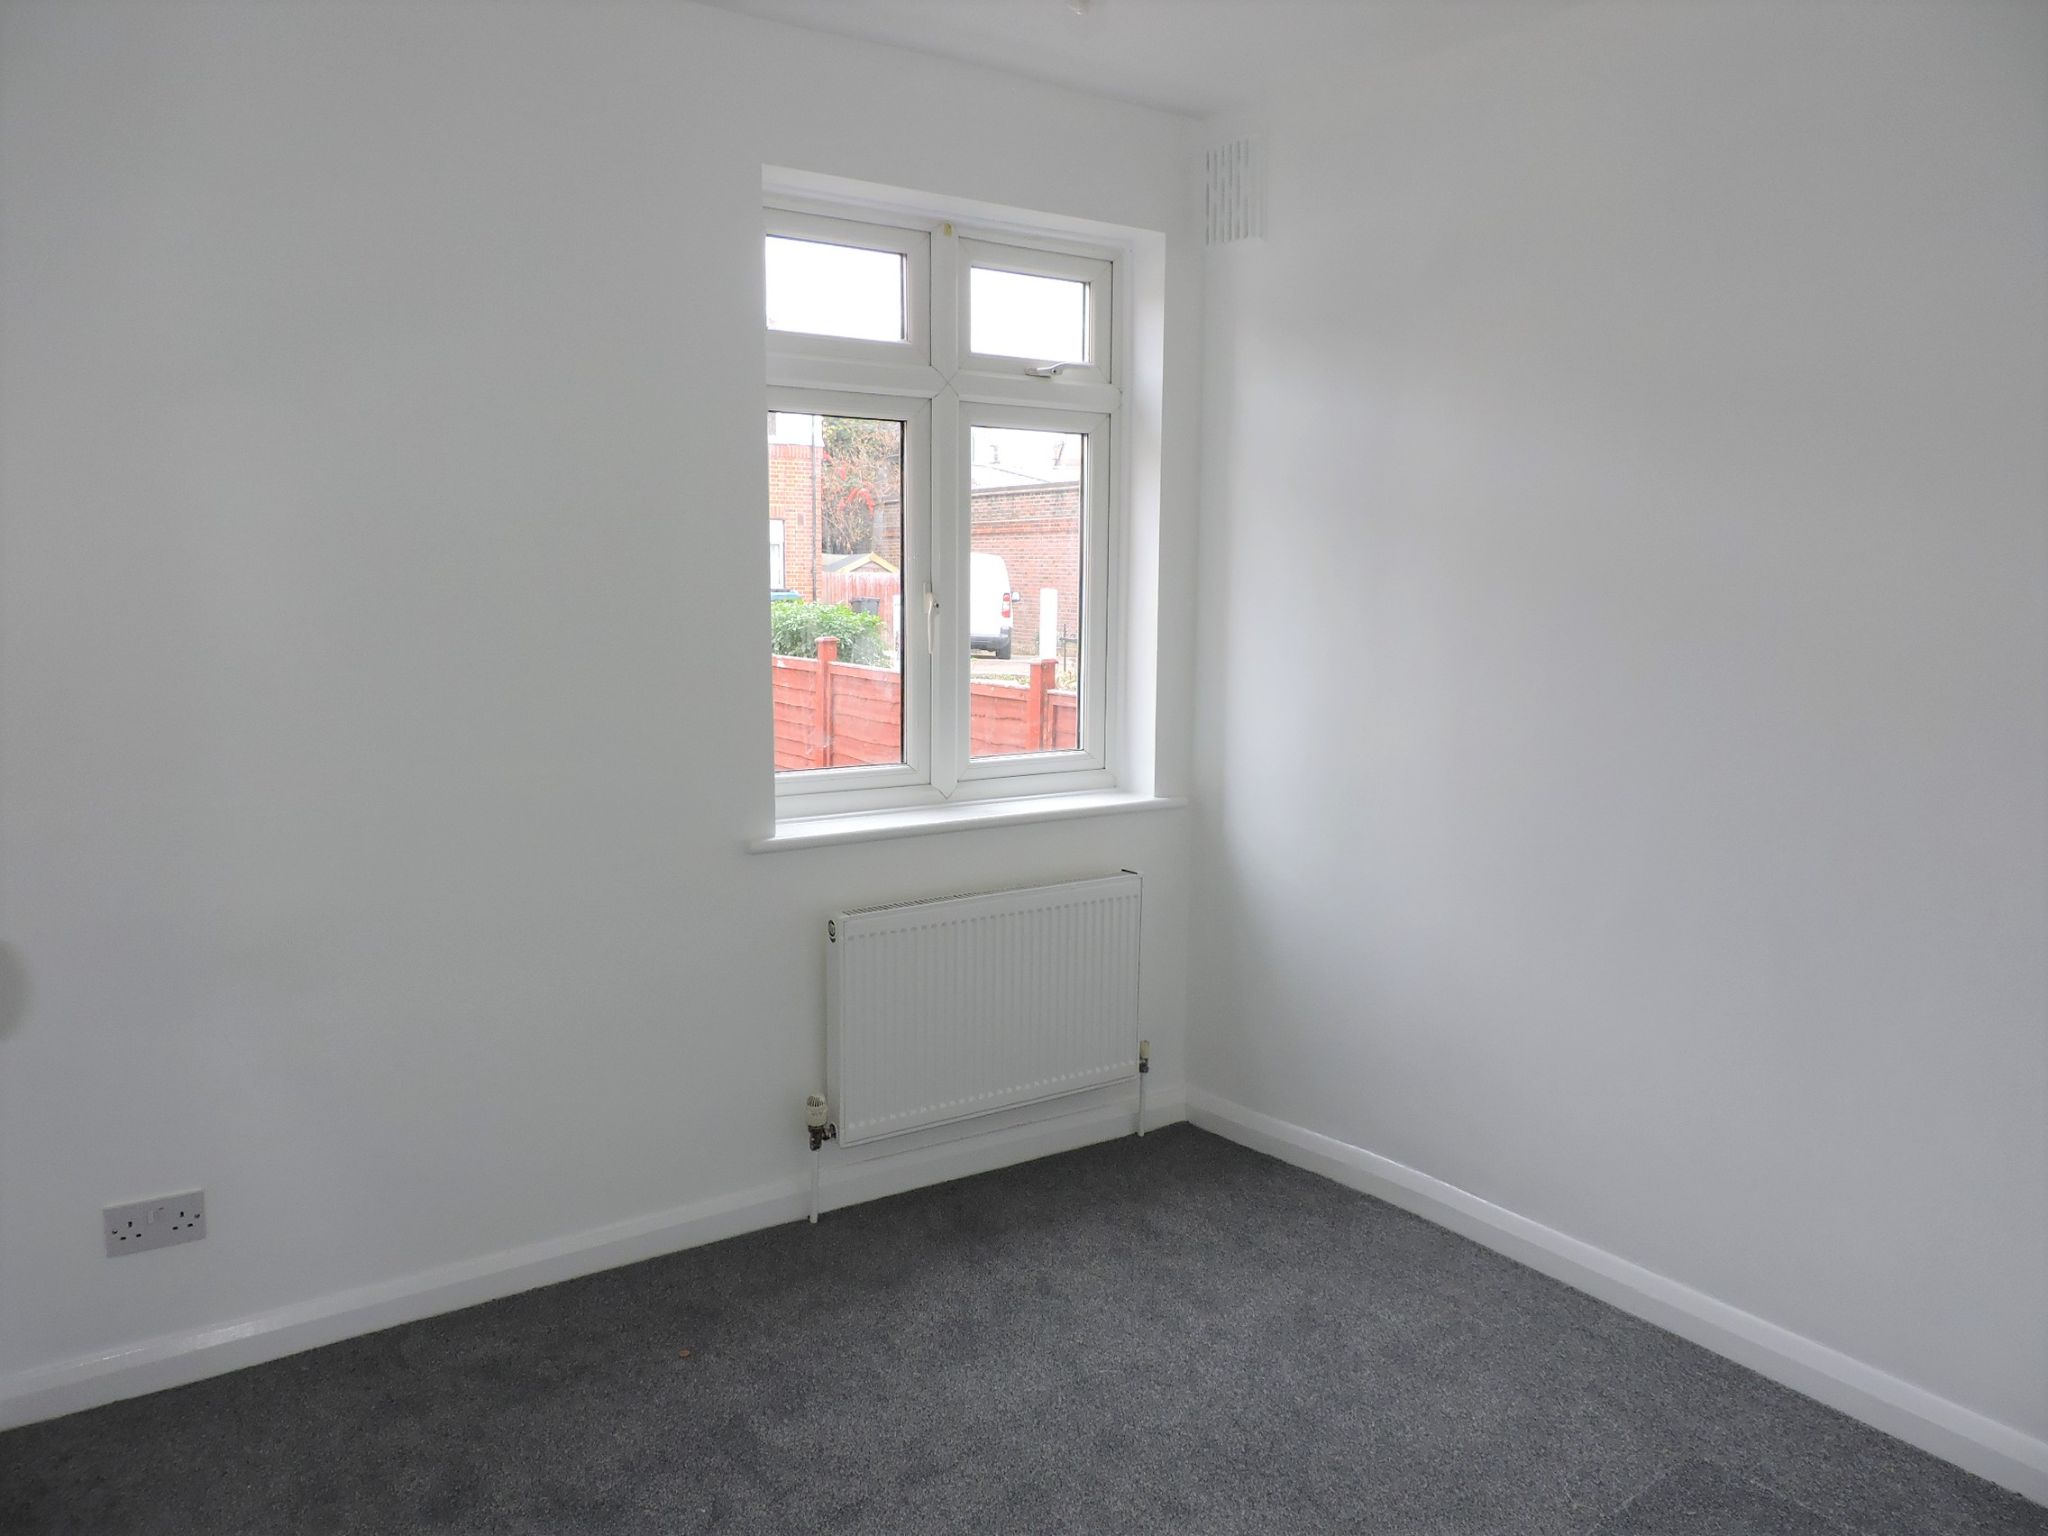 2 bedroom ground floor maisonette flat/apartment Let Agreed in New Malden - Photograph 9